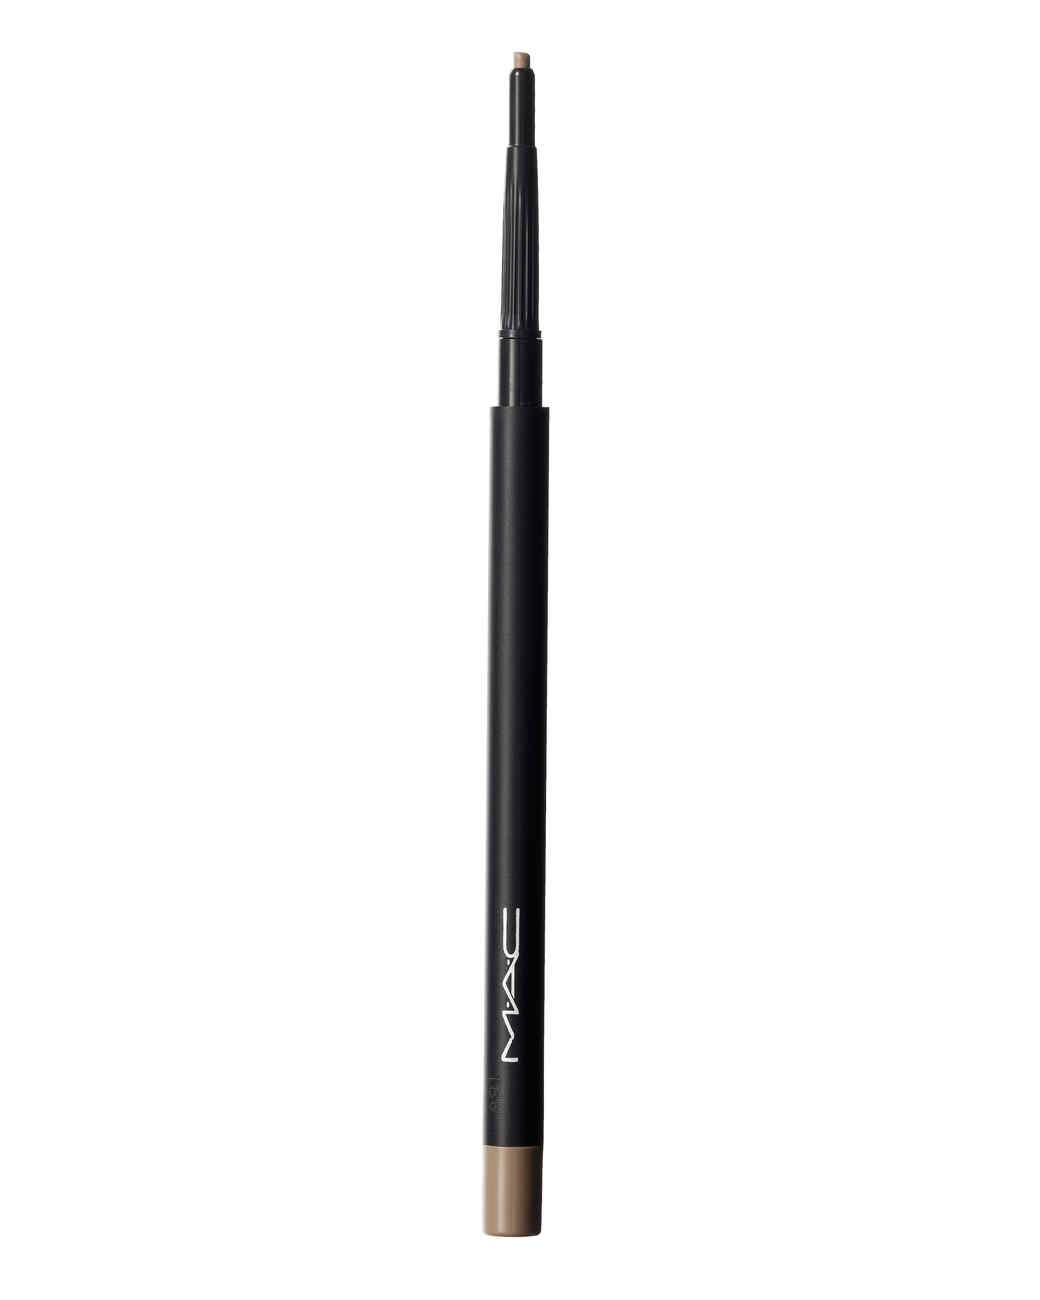 mac-eyebrow-pencil-001-mld109568.jpg